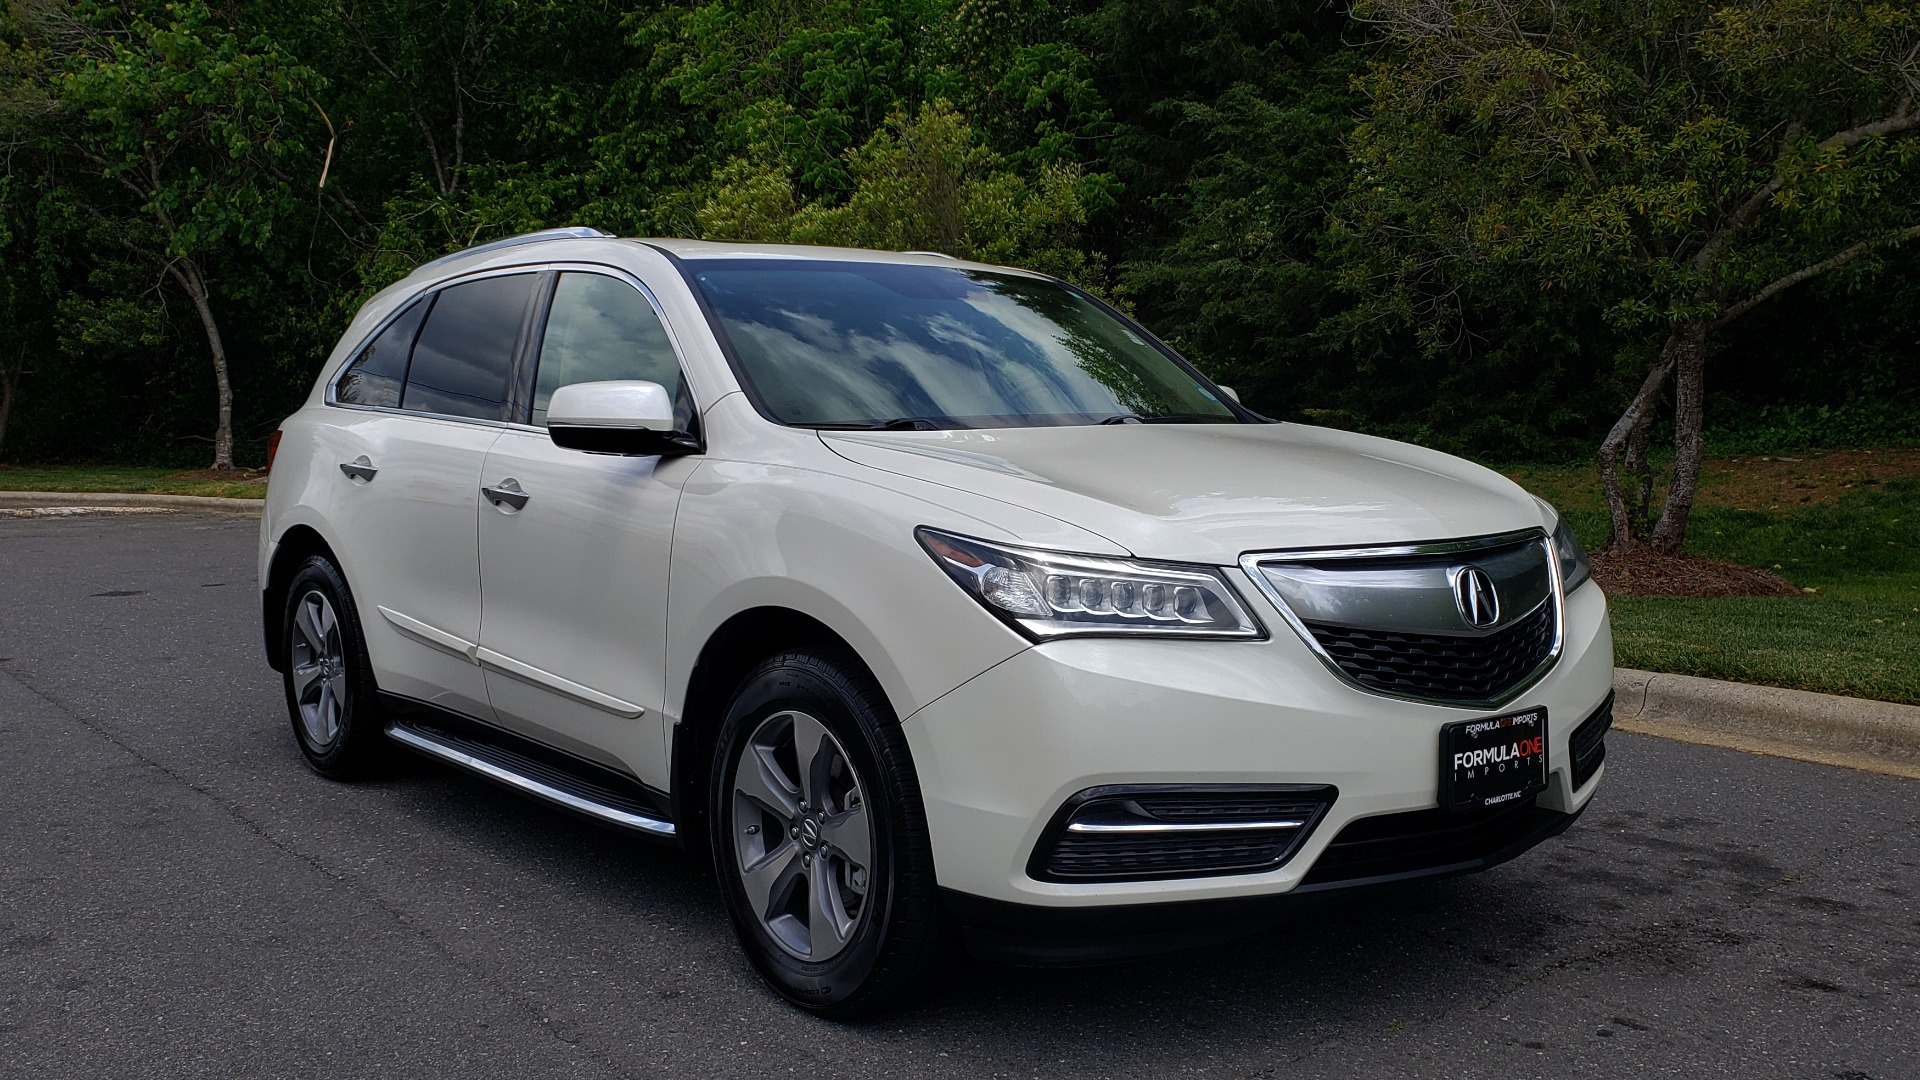 Used 2014 Acura MDX AWD / NAV / SUNROOF / 3-ROW / REARVIEW / PREMIUM SND for sale Sold at Formula Imports in Charlotte NC 28227 4